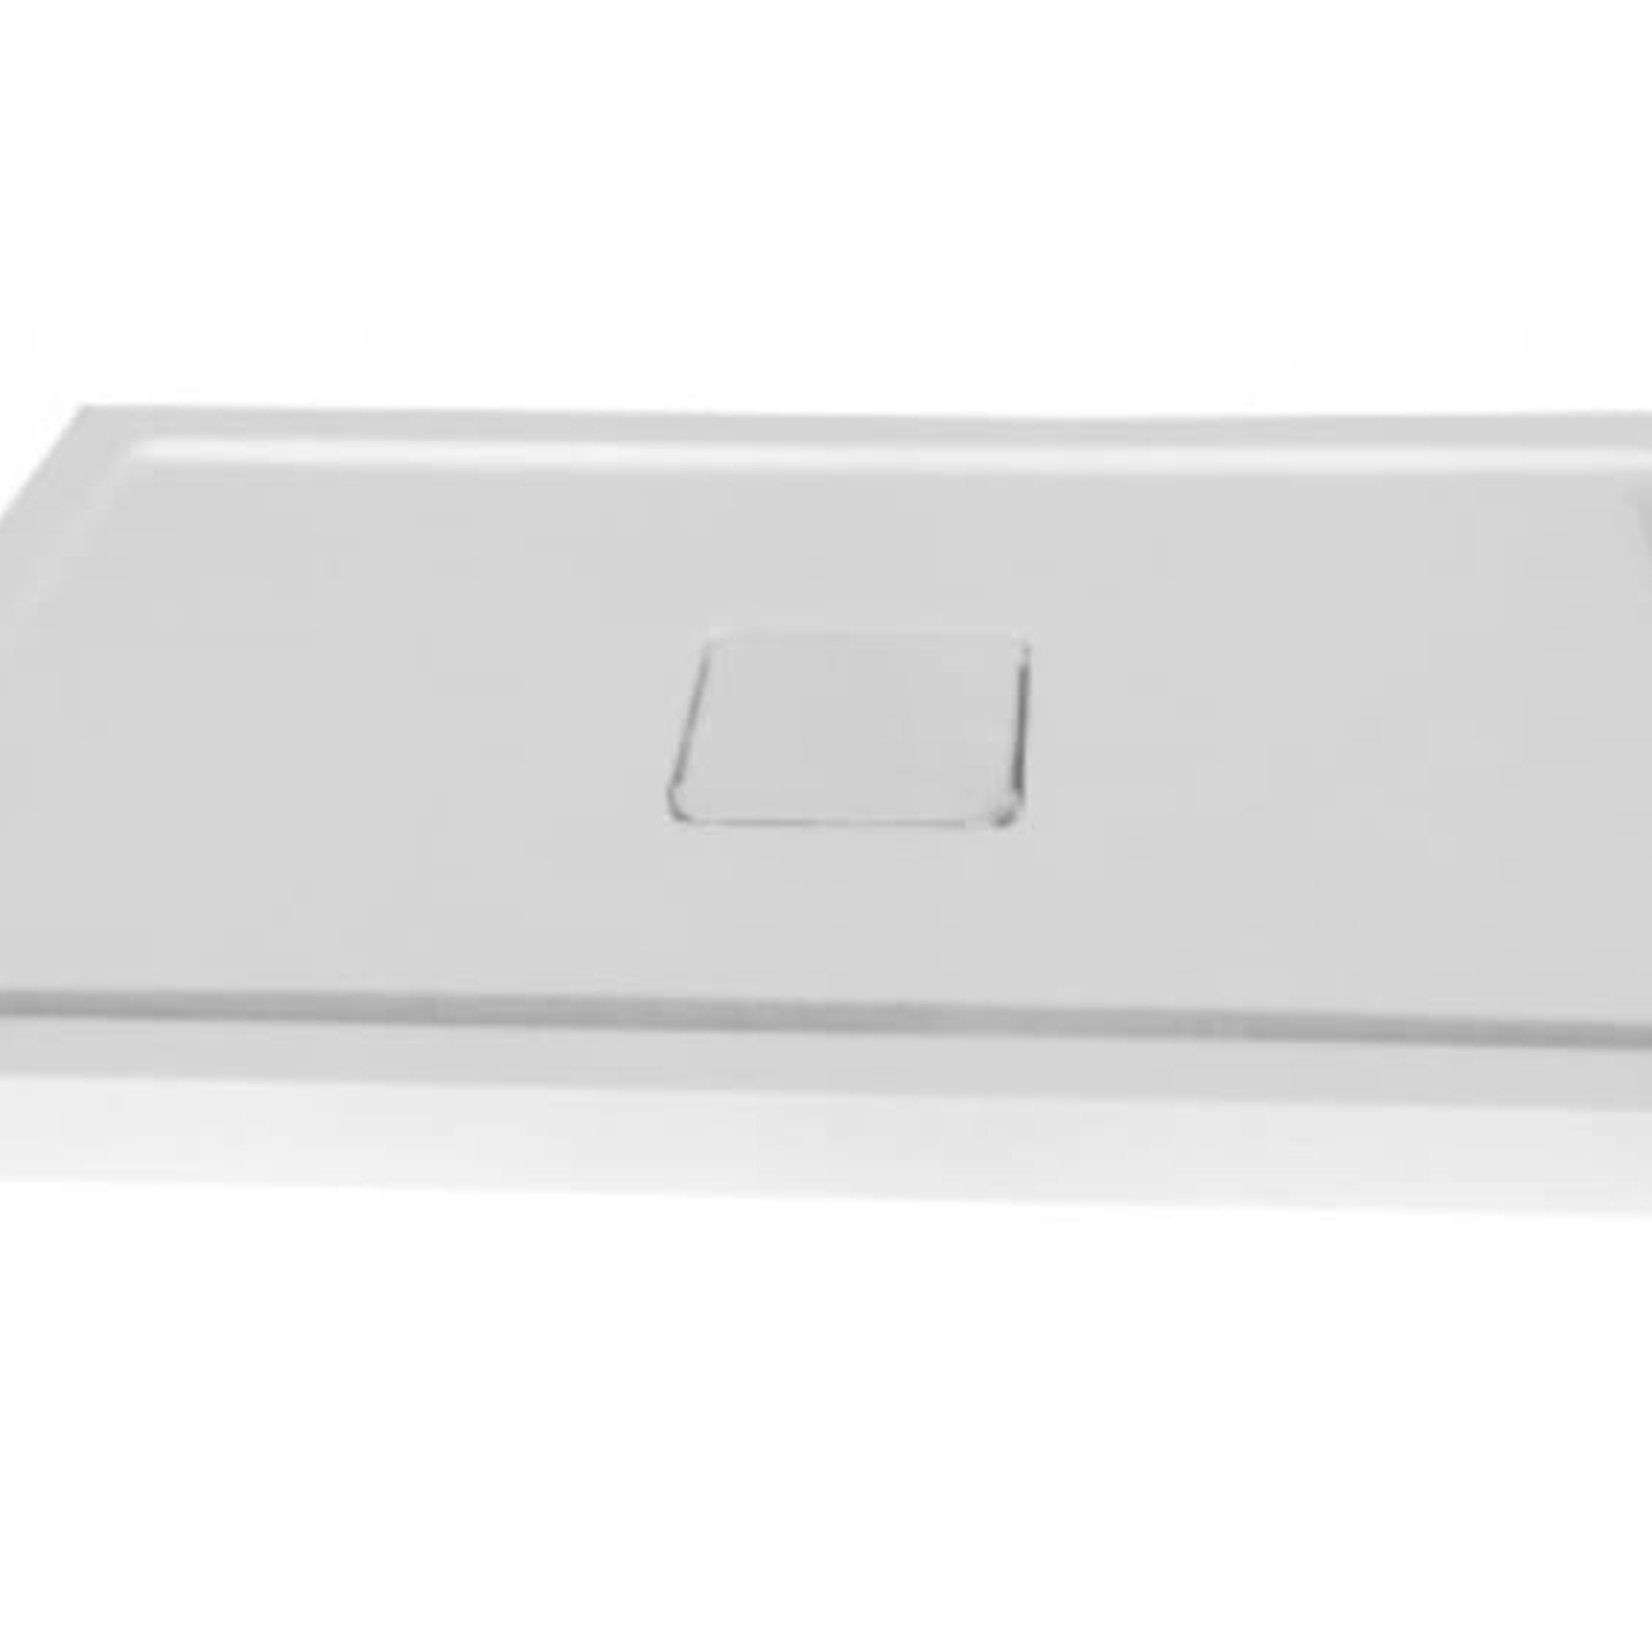 CDC central drain shower base with drain cover